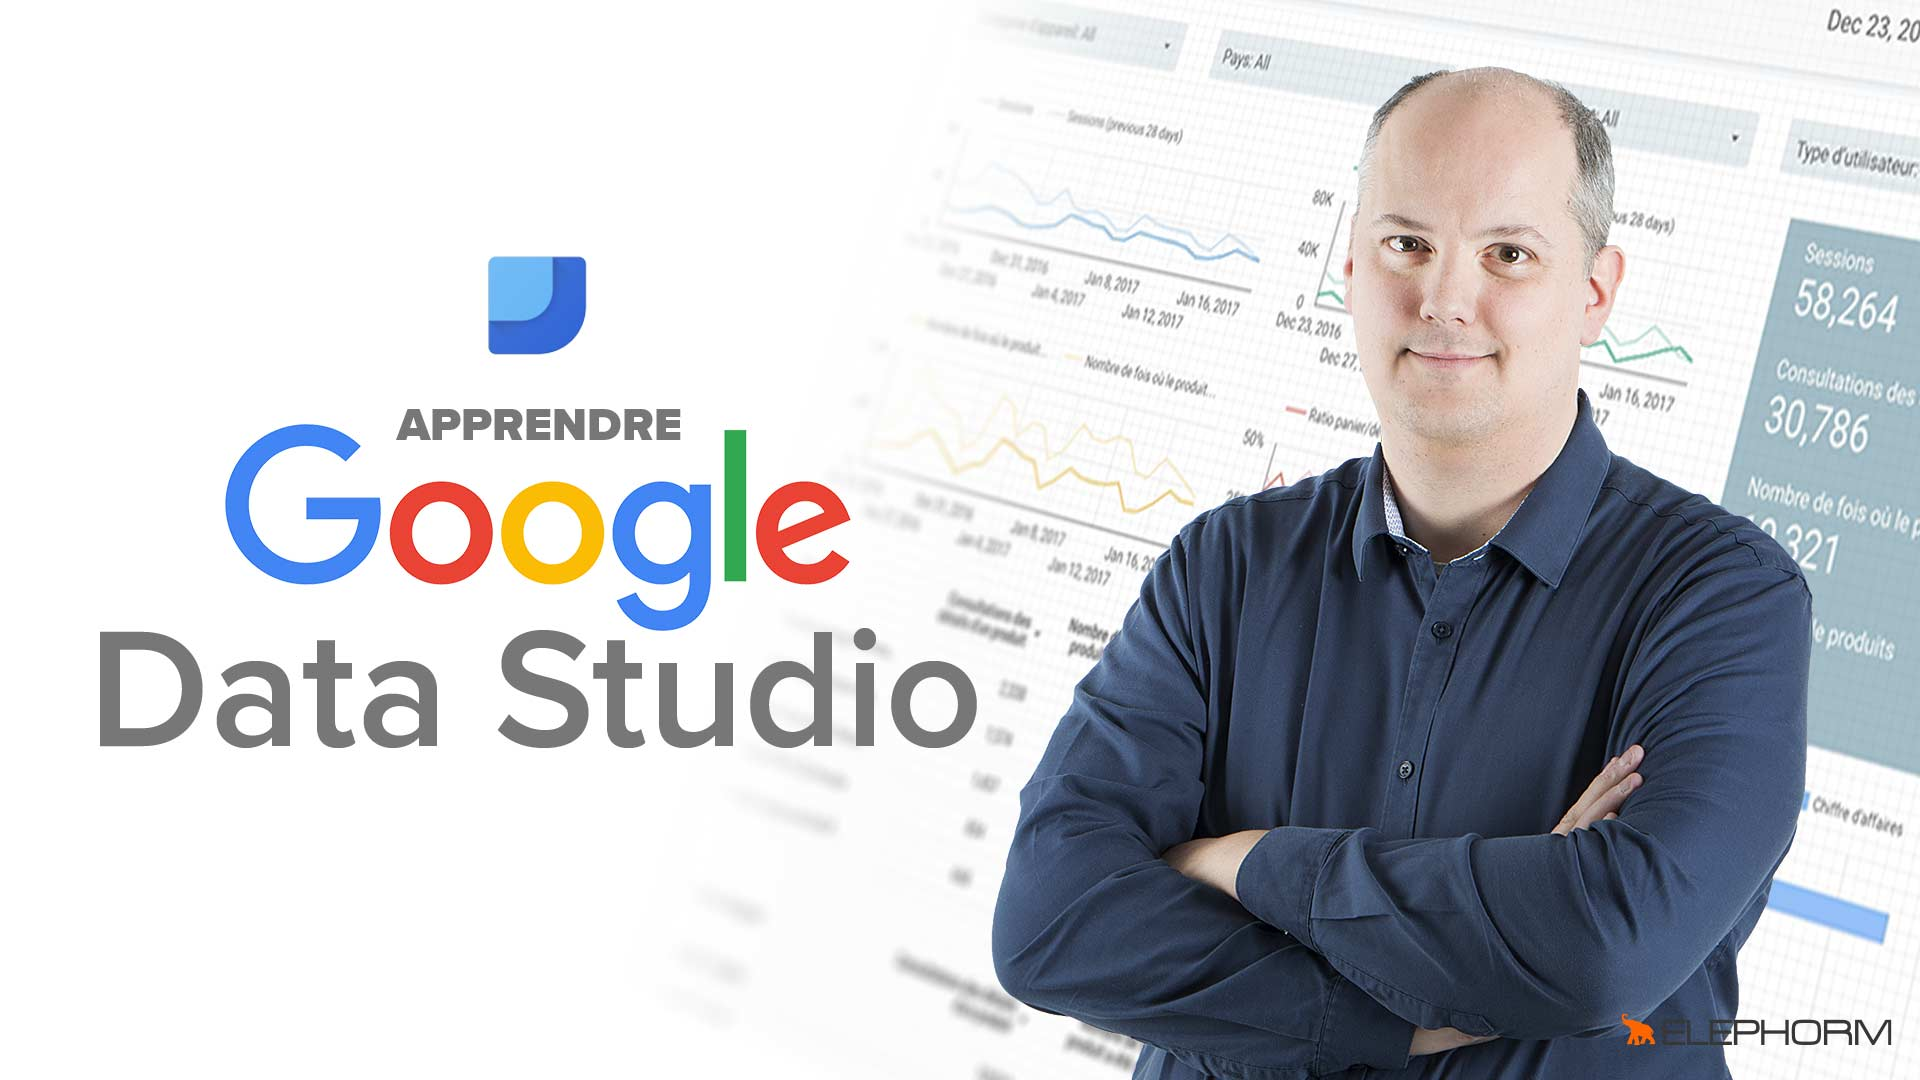 Apprendre Google Data Studio